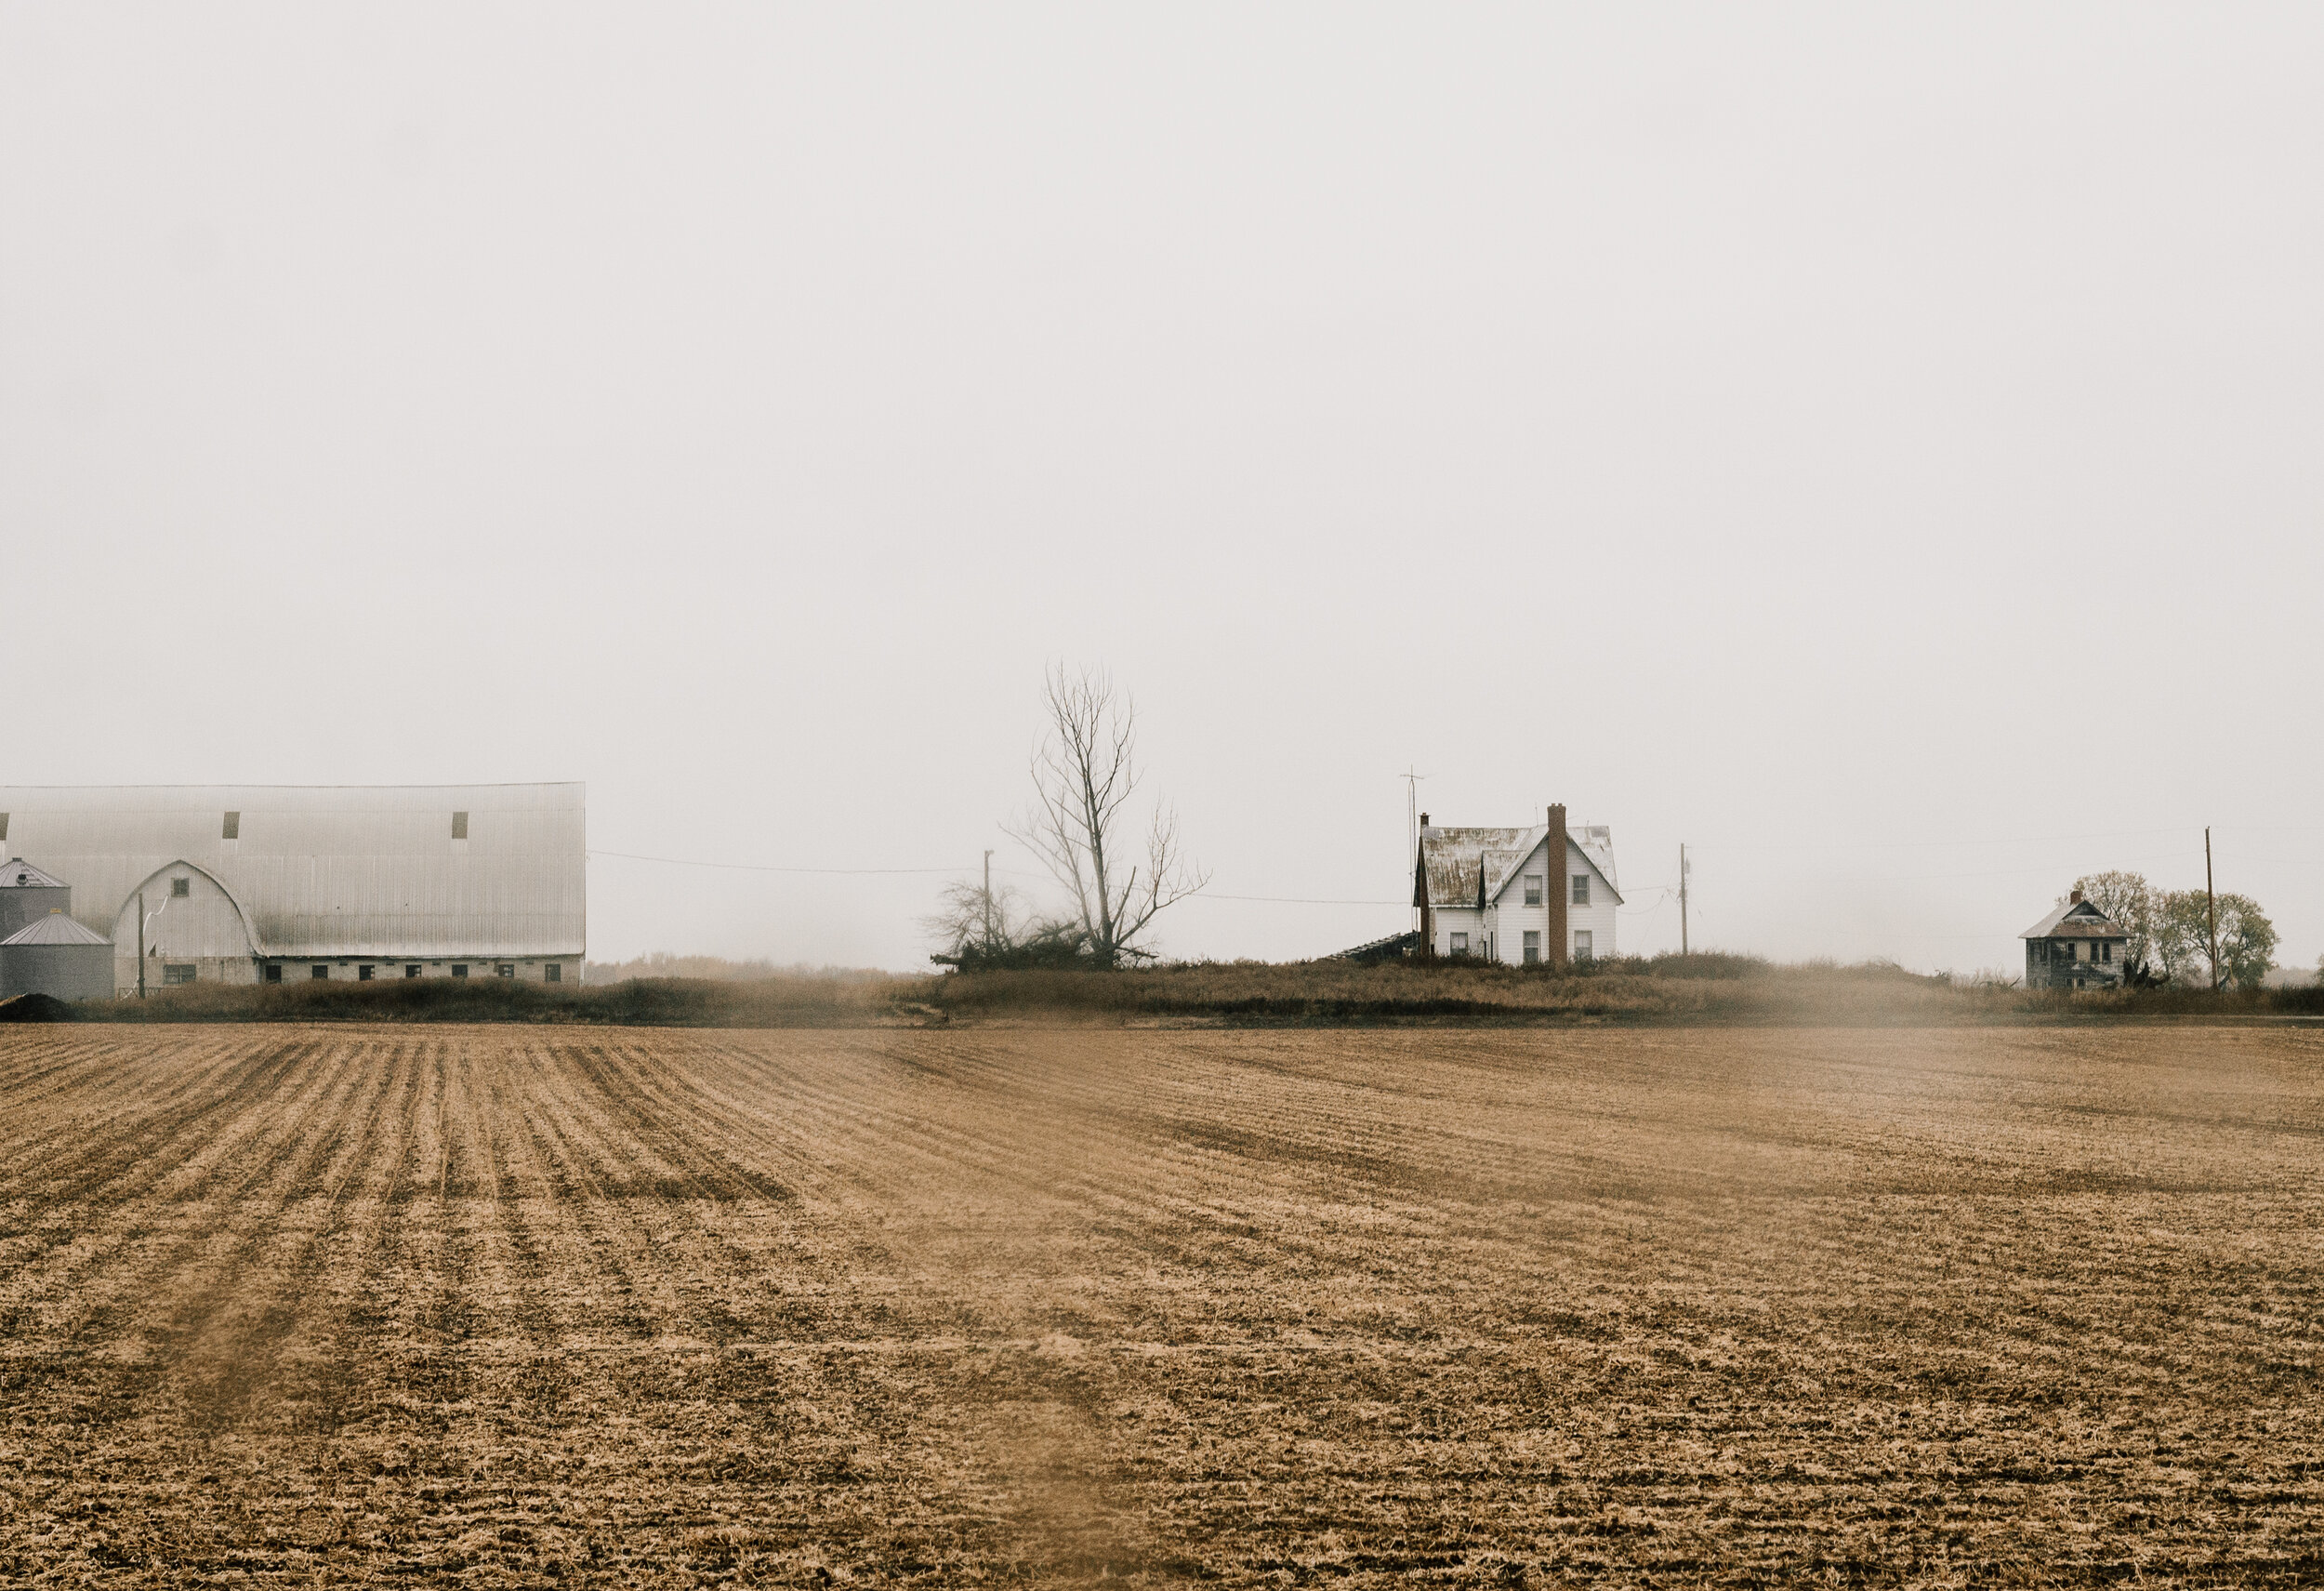 A farm in Northern Ontario, seen for a moment through a car window.